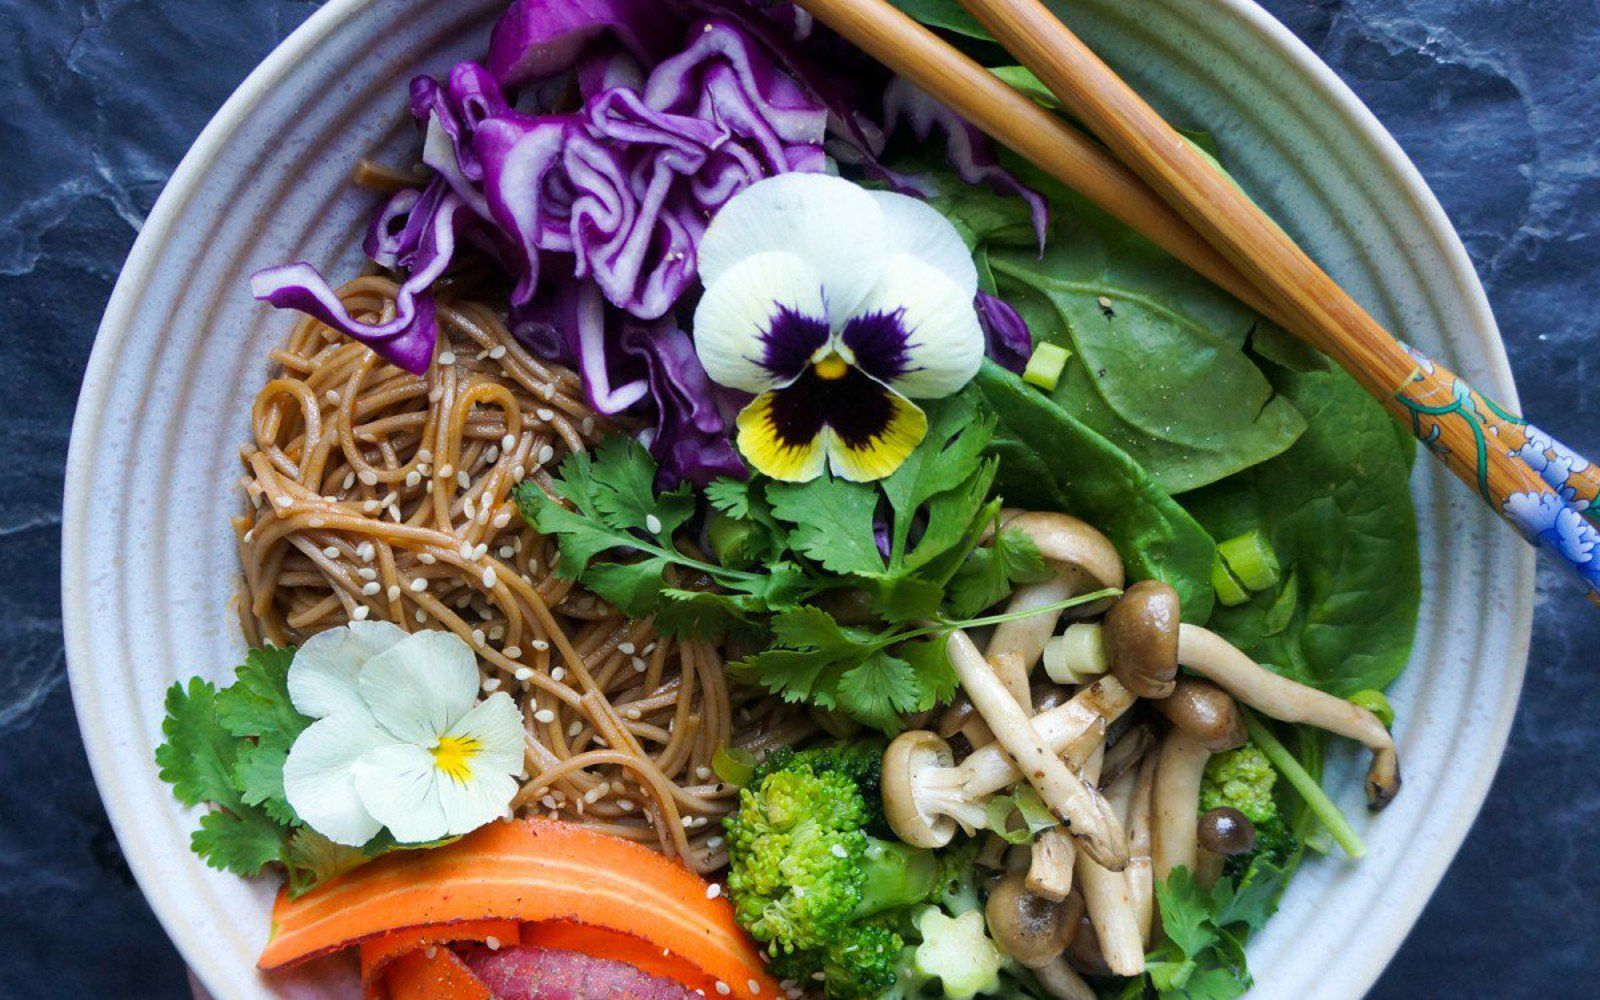 In this recipe, Thai red curry is made creamy with coconut milk and used as a base to soba noodles with plenty of mushrooms and flavorful vegetables.